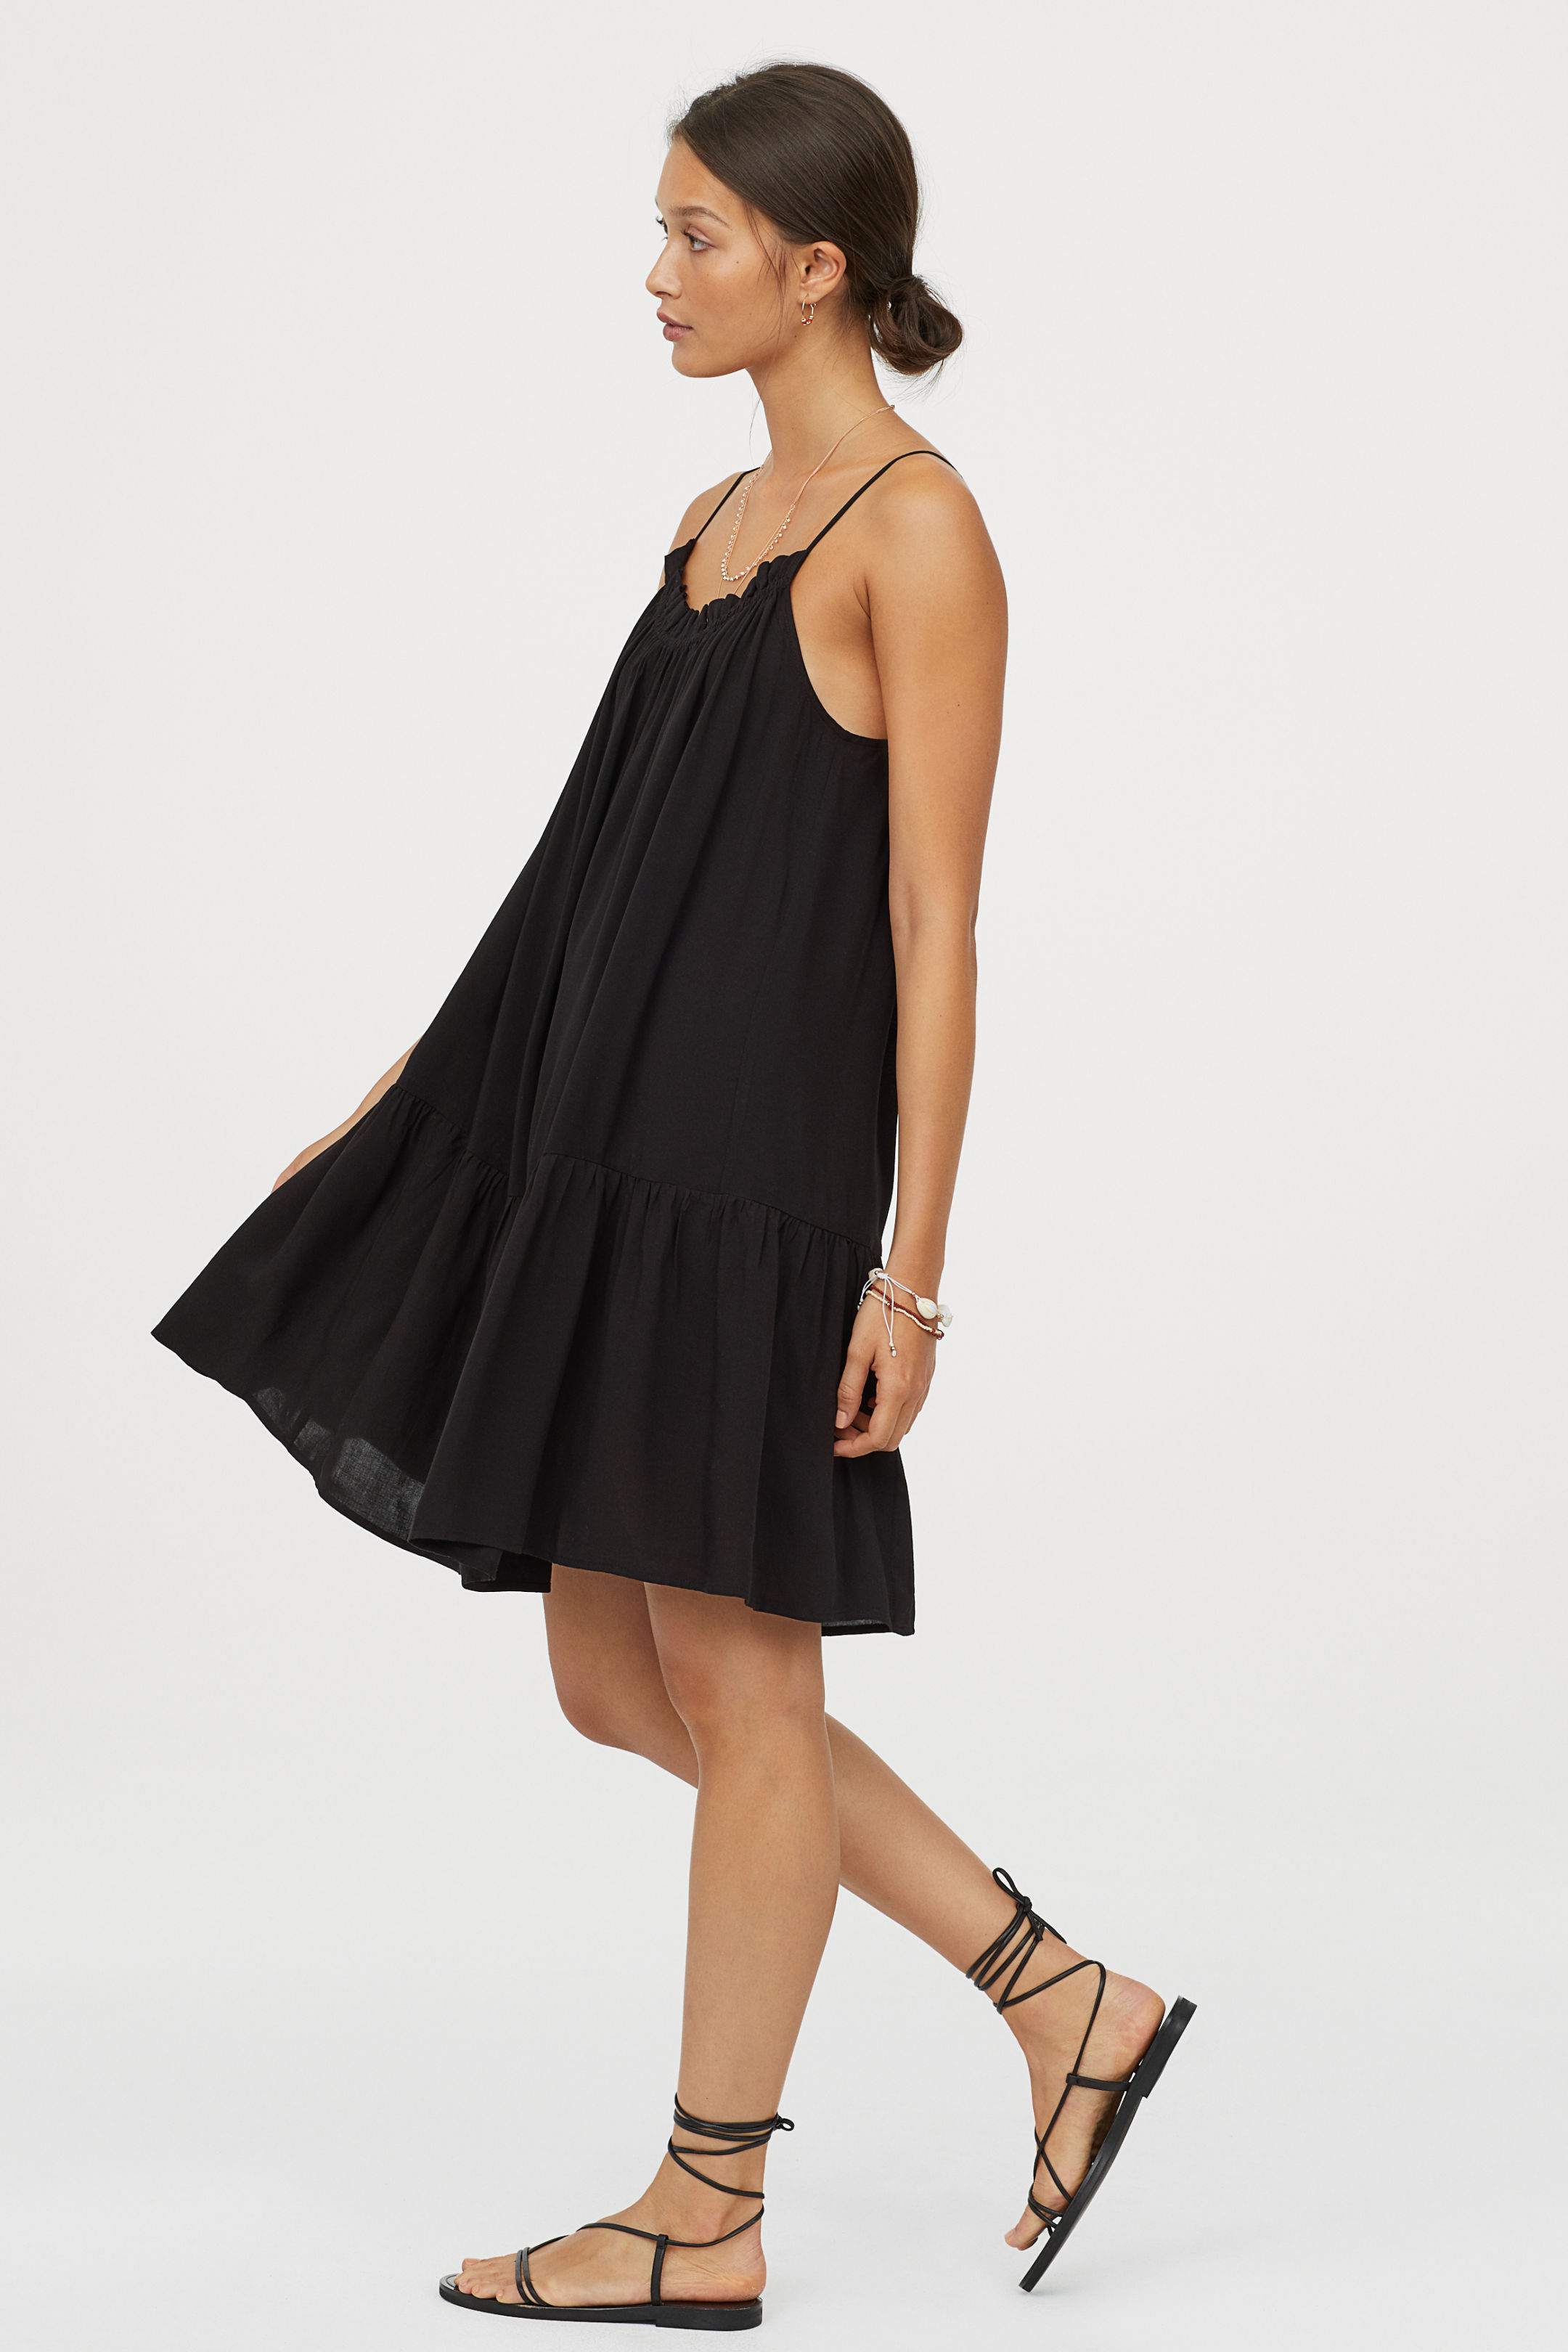 H&M Ruffled Dress